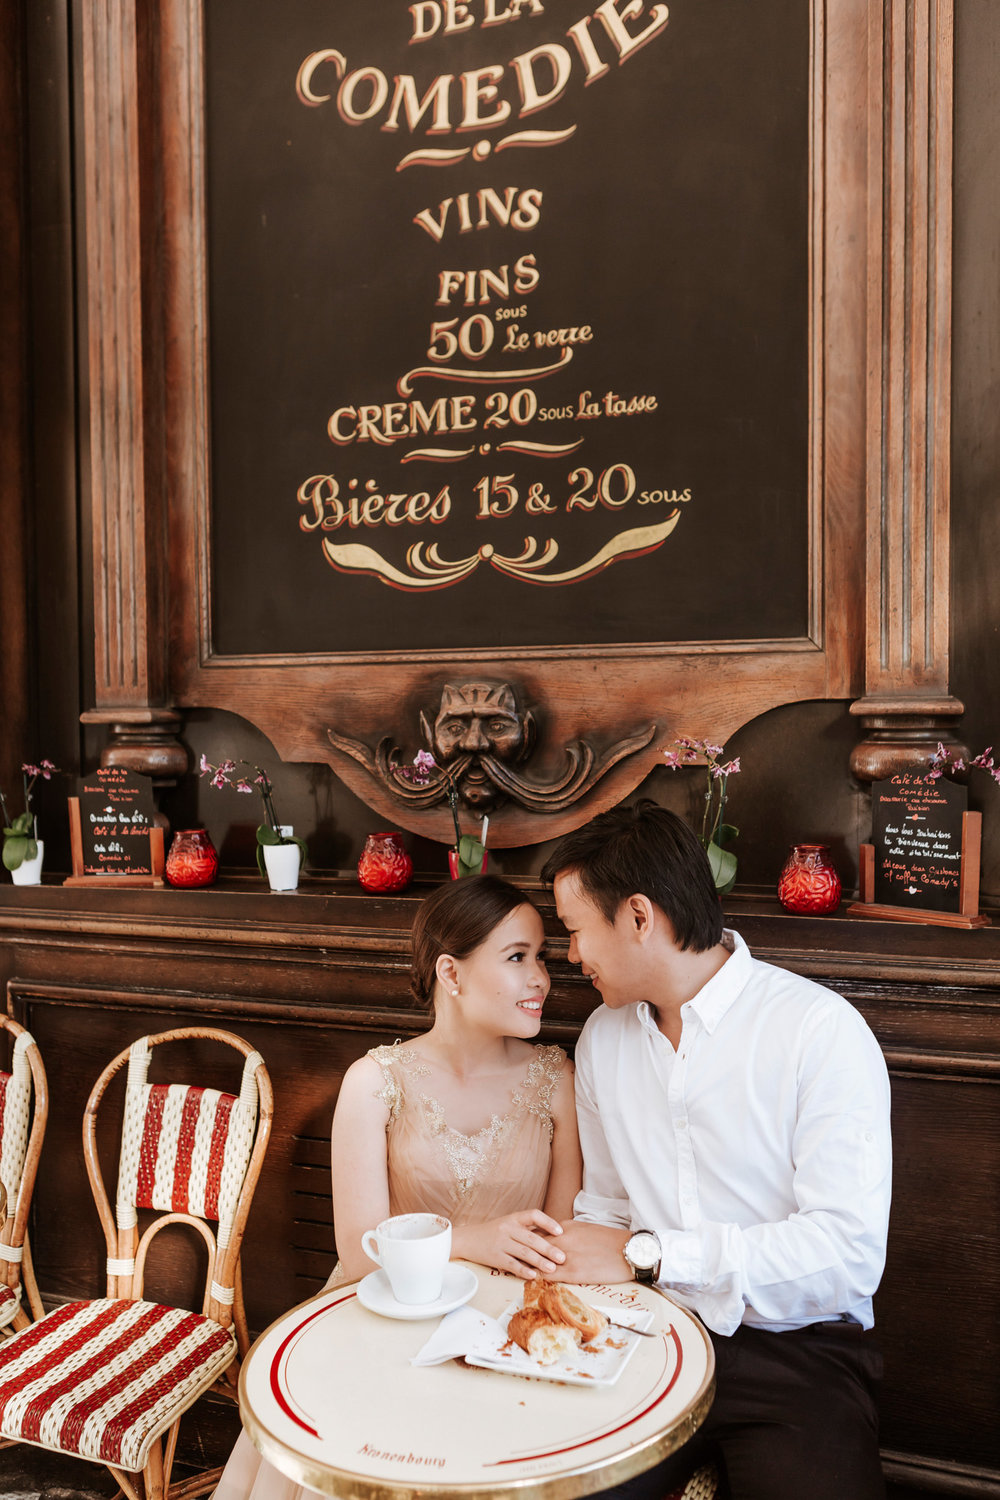 Pre-wedding couple portrait with coffee at cafe de la comedie captured by Paris Photographer Federico Guendel